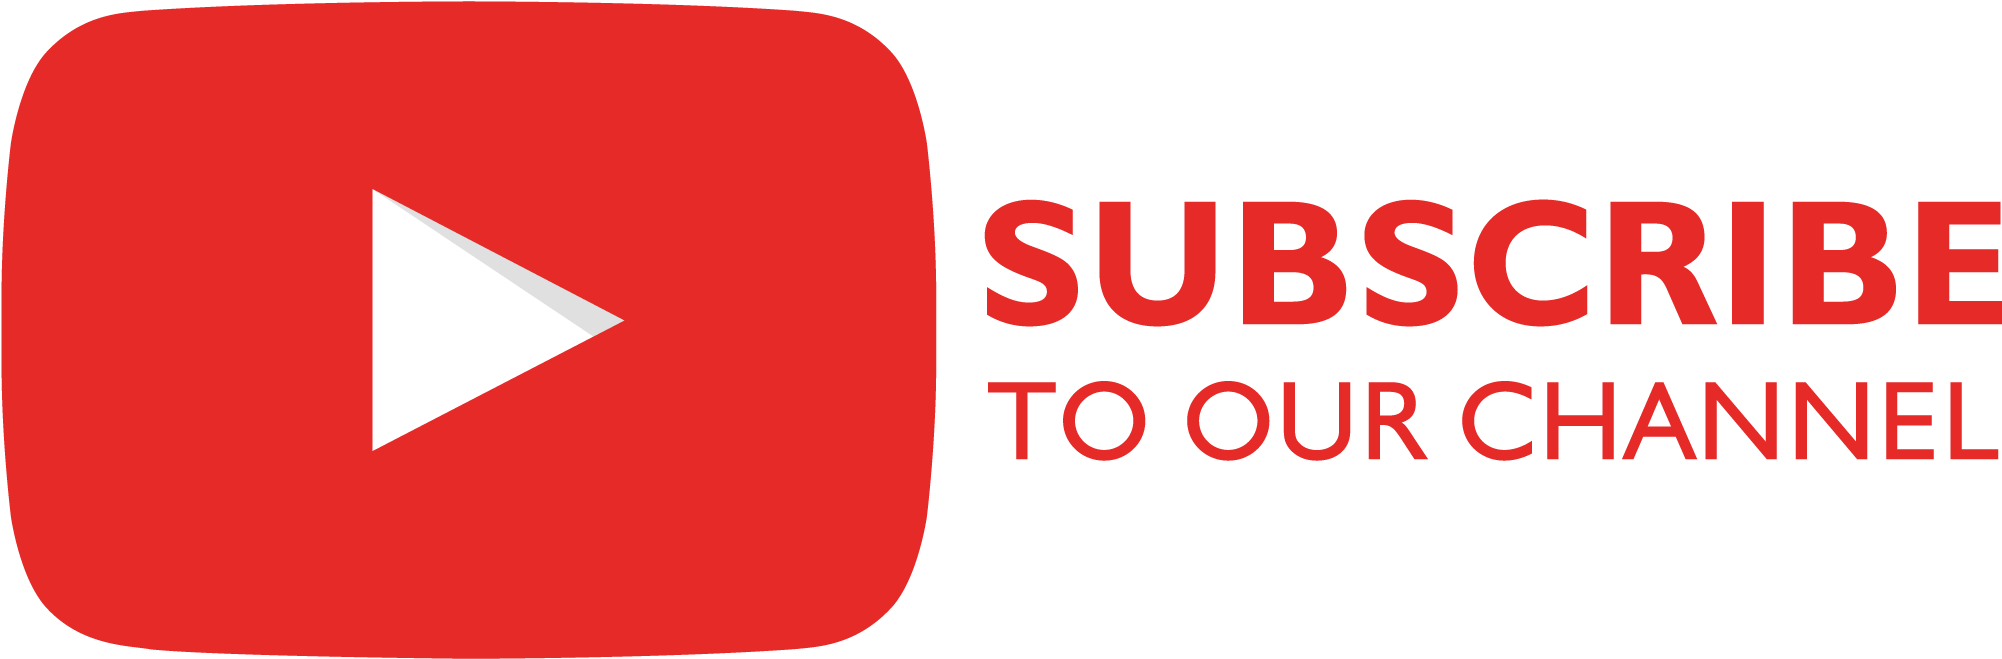 Subscribe to our Youtube